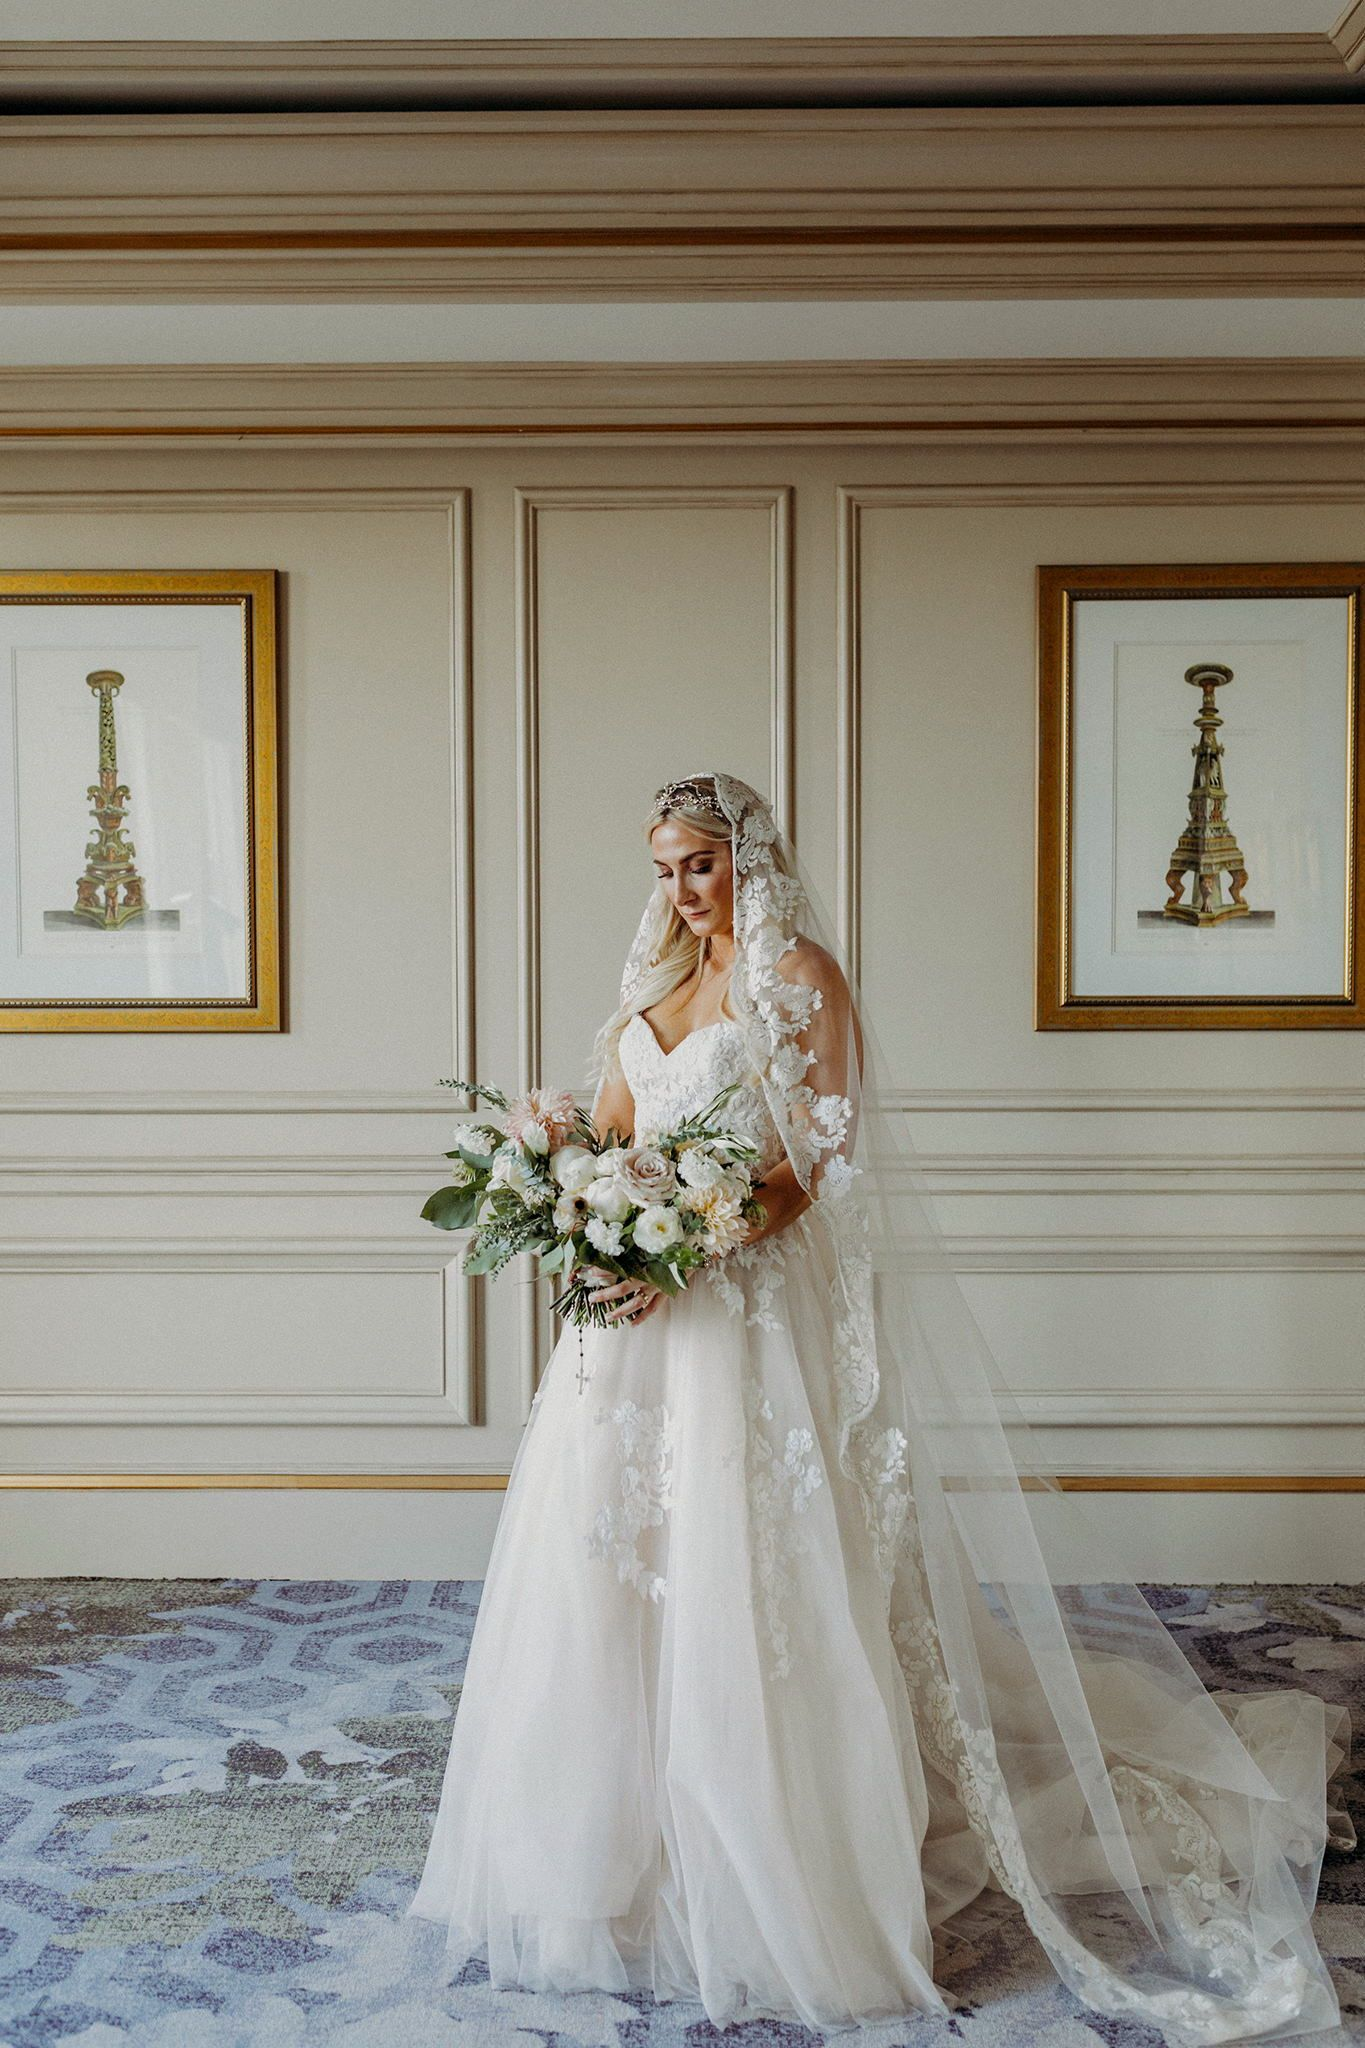 7b1a8d8ac8a9a classy french inspired new orleans wedding mantilla veil new orleans wedding  photographer kristen soileau portraits night photo indoor photography  elegant ...